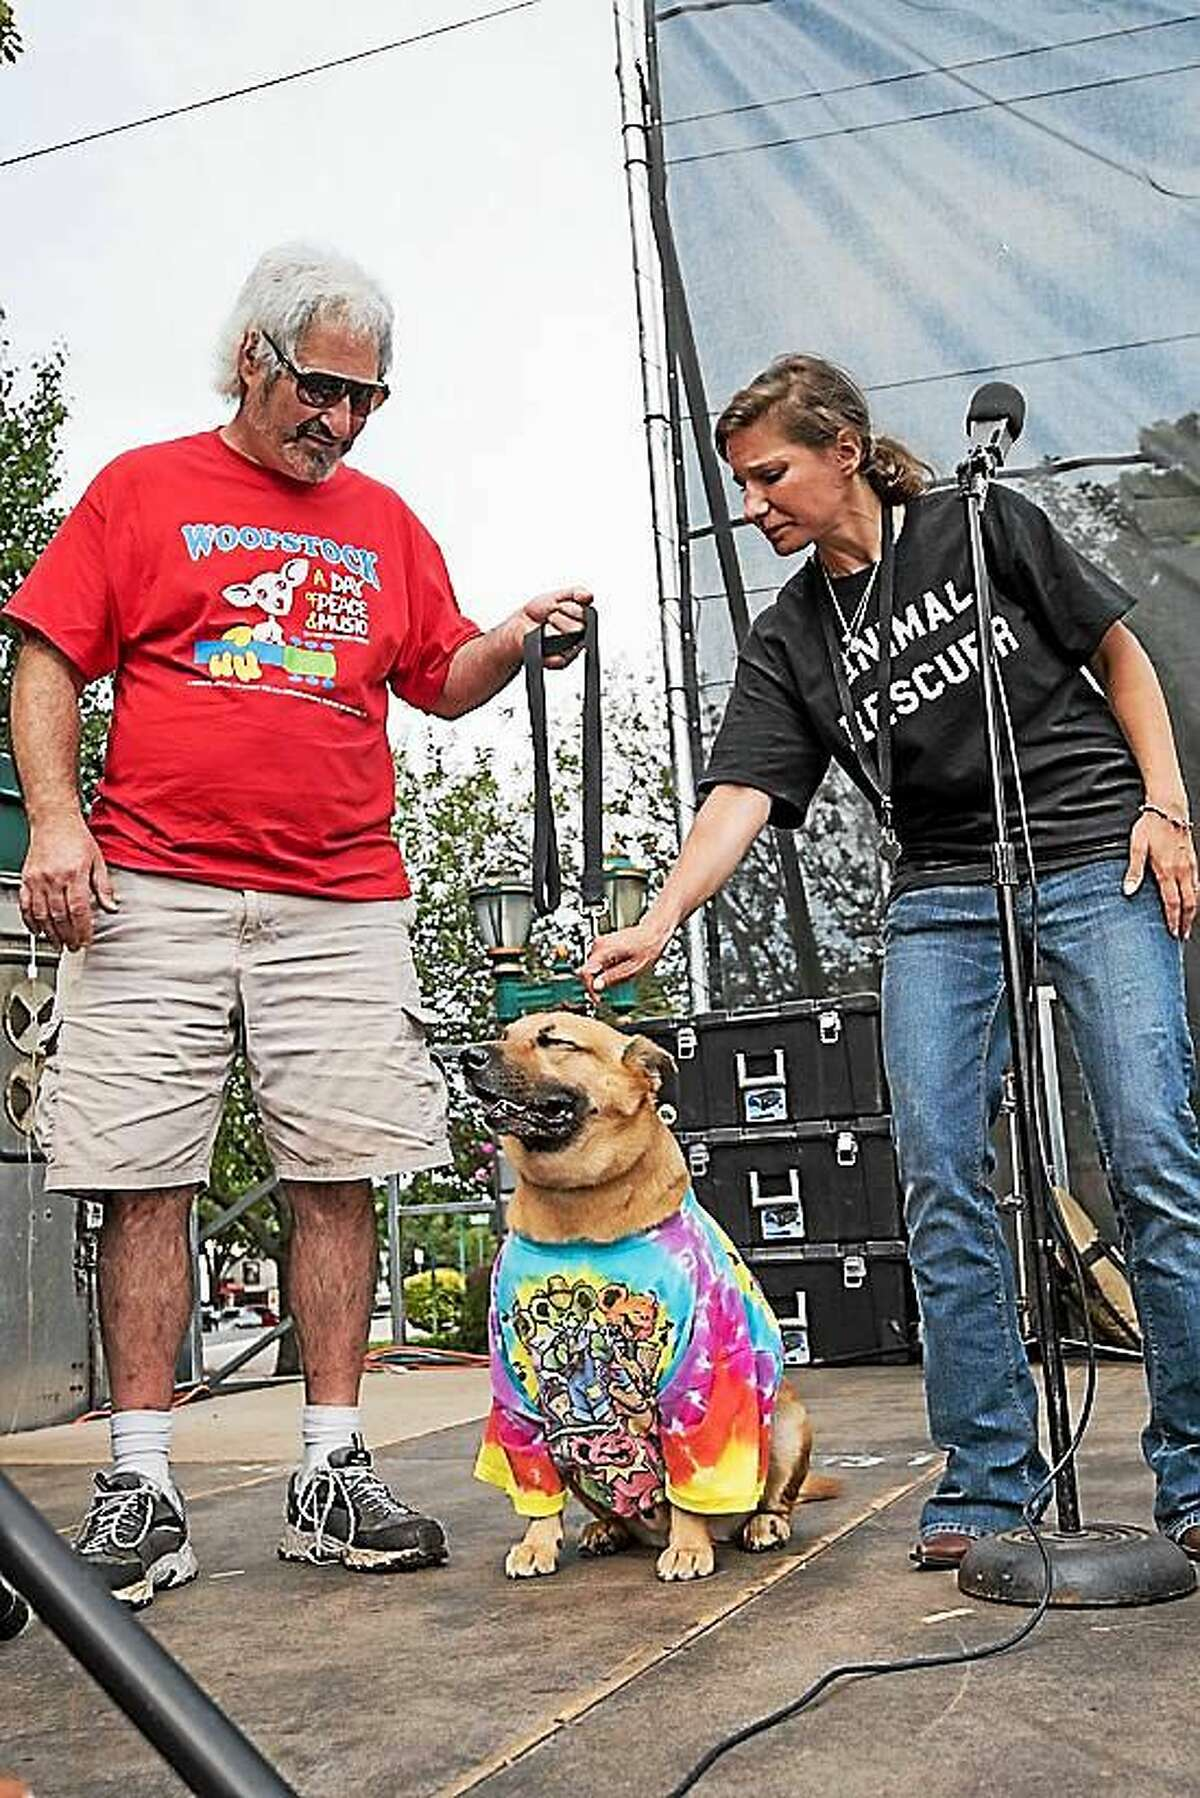 Of course dogs are welcome to Woofstock Saturday.